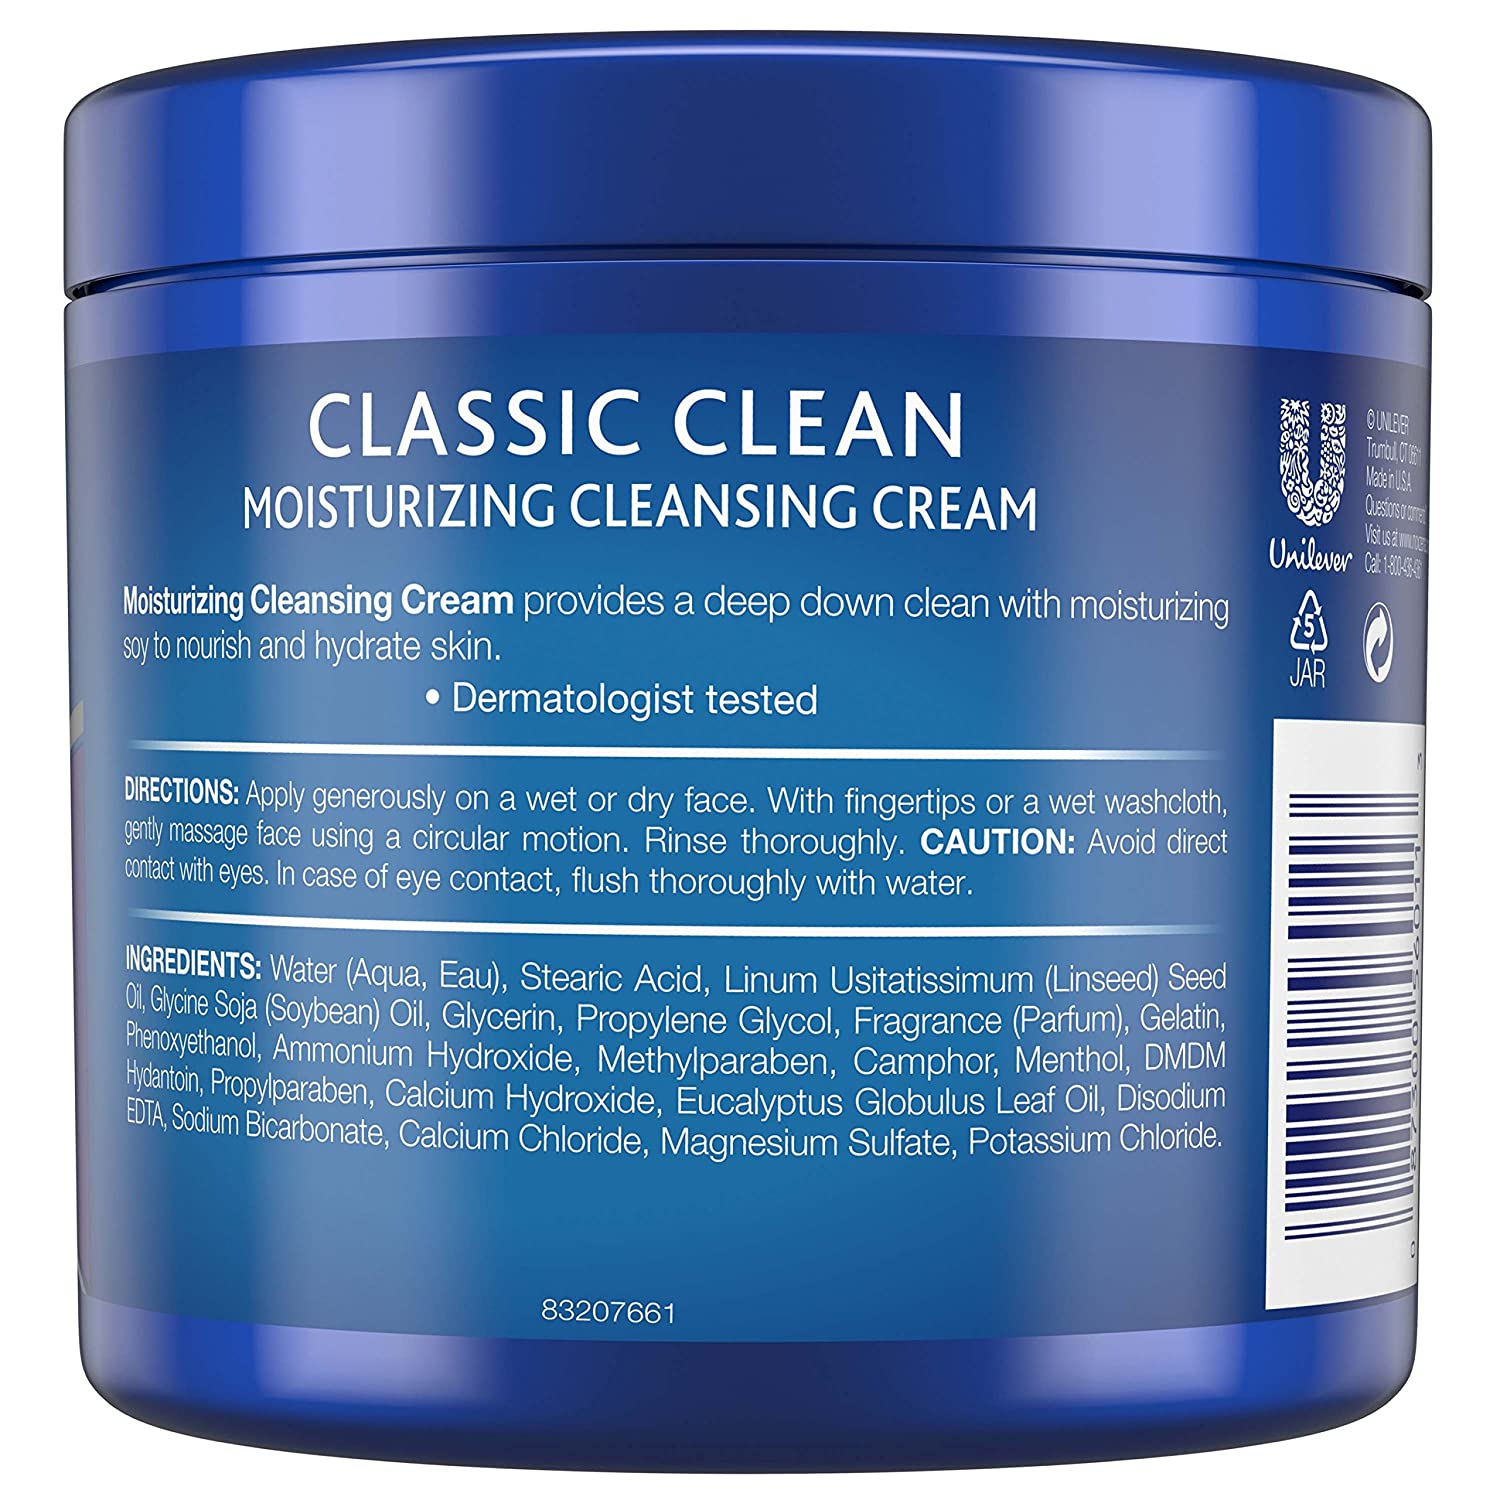 Noxzema Facial Cleanser, Moisturizing Cleansing, 12 oz pack of 6